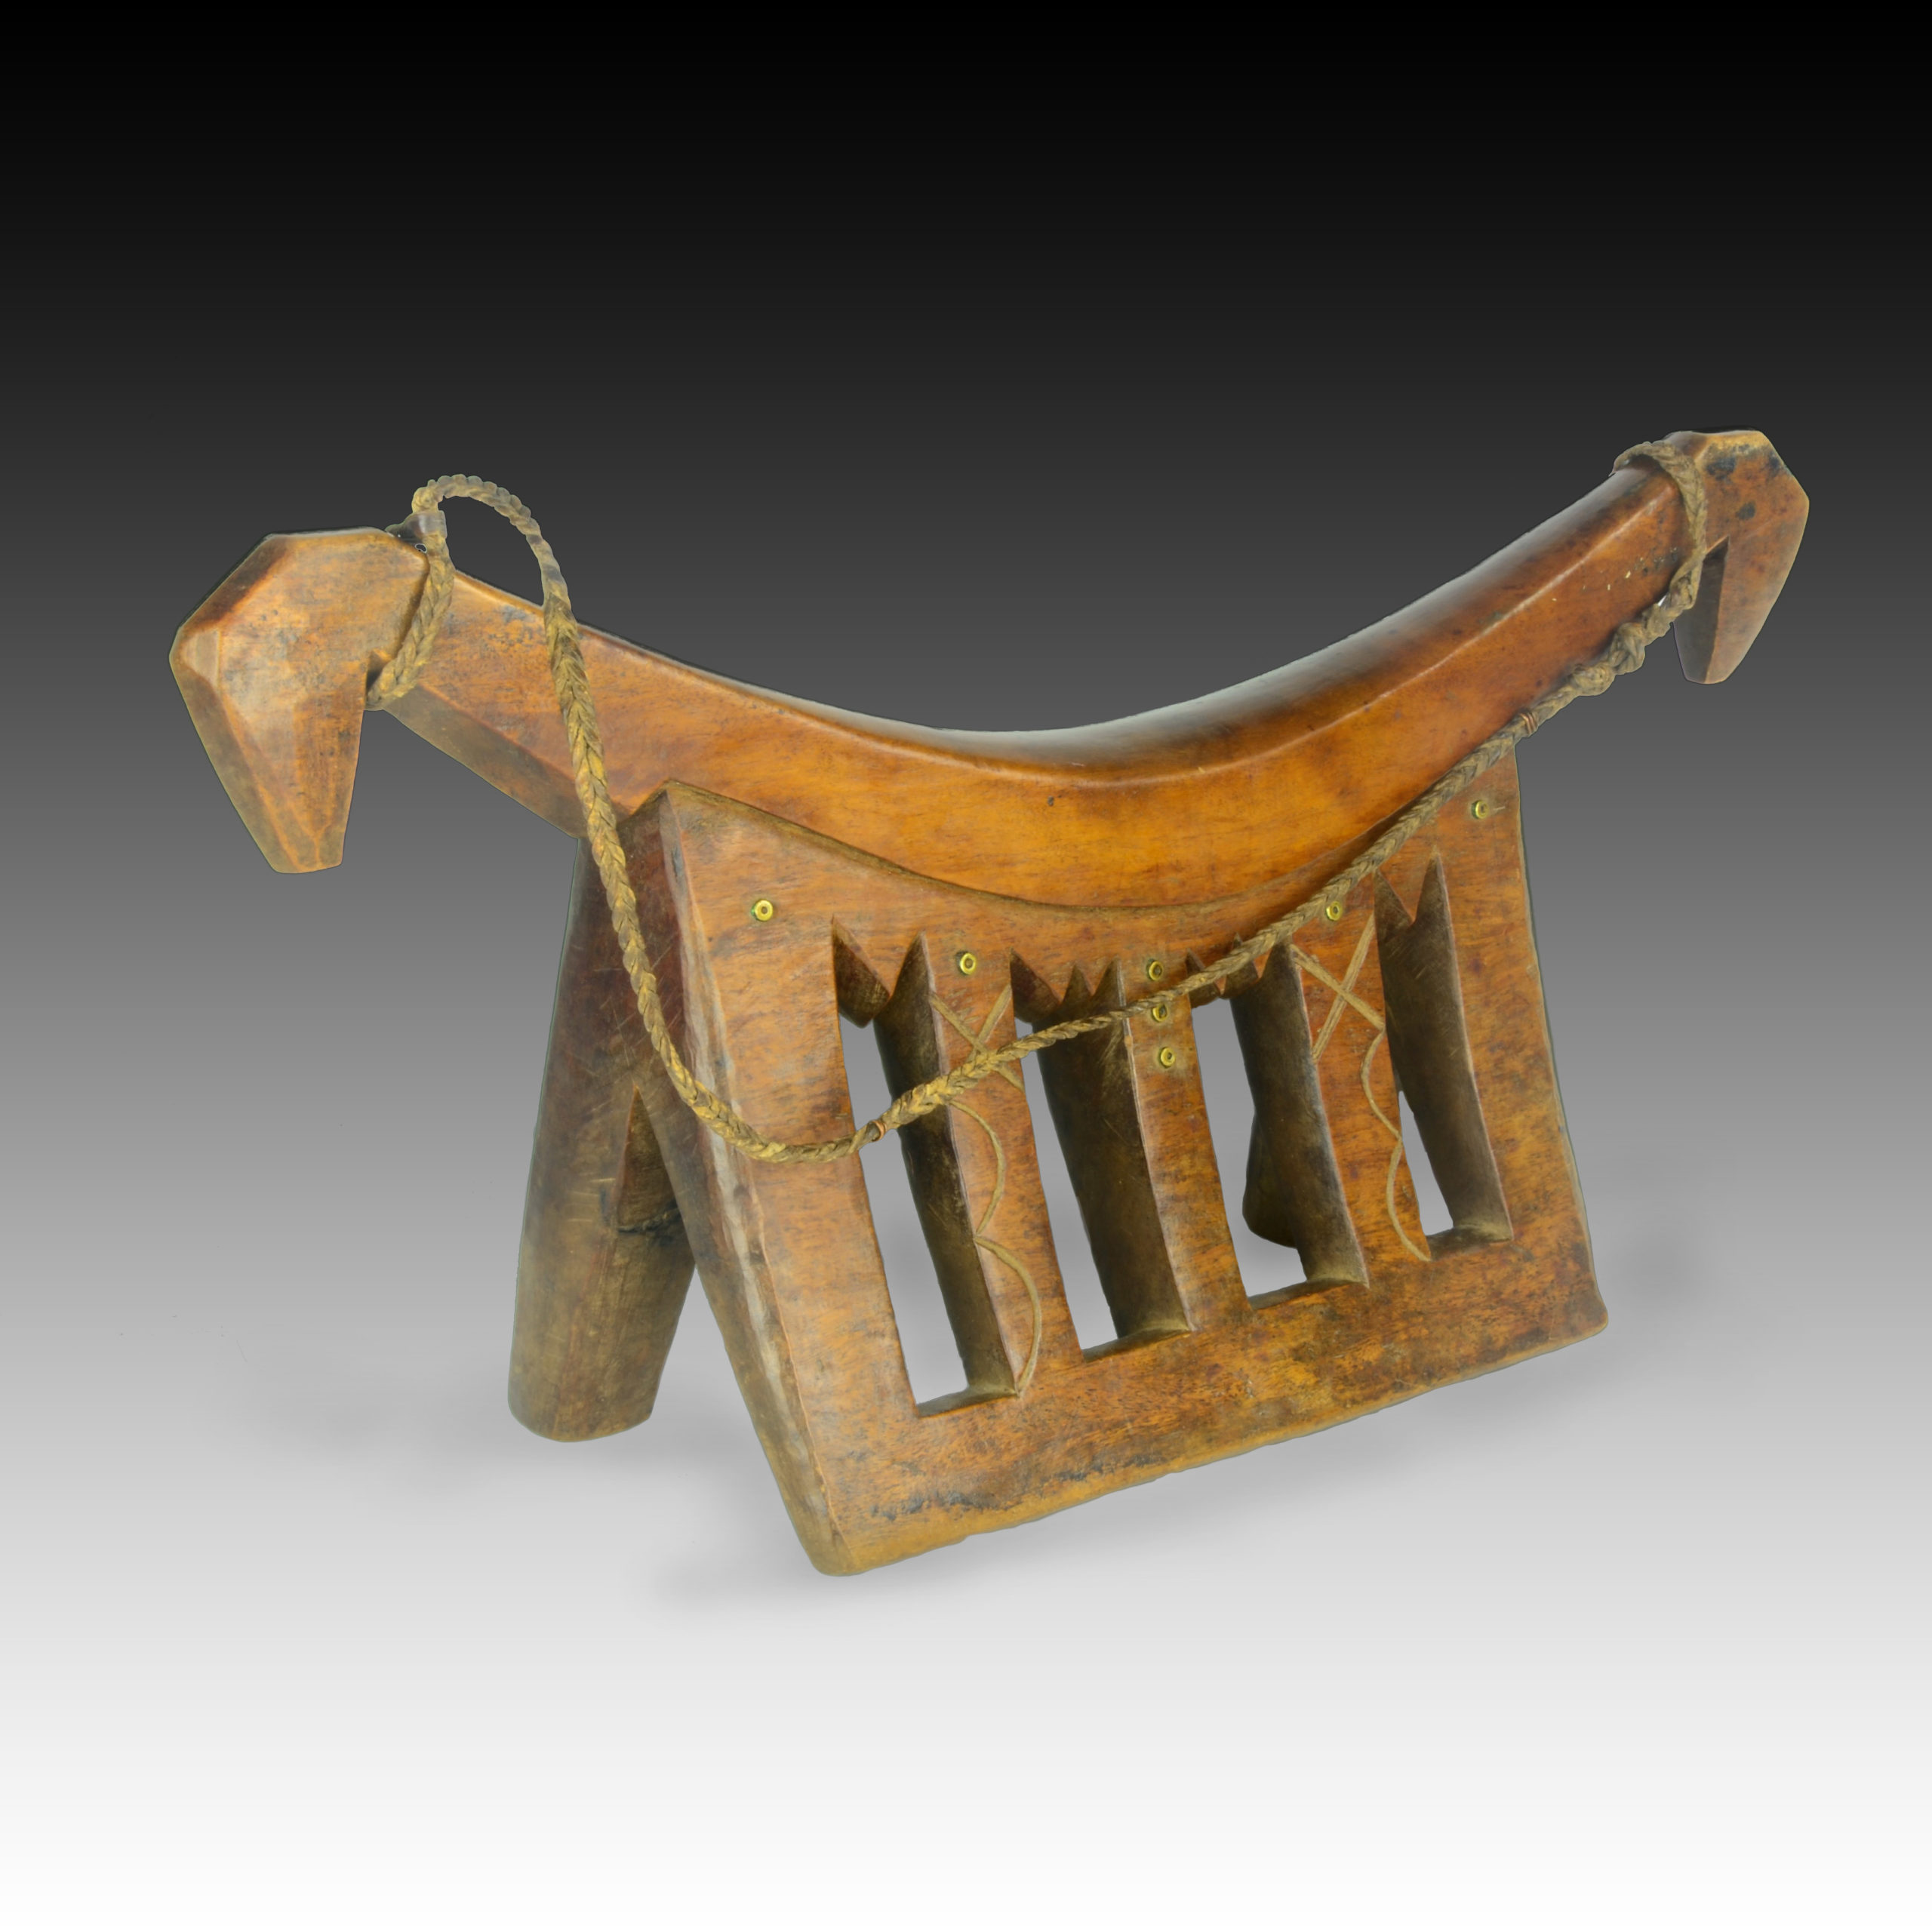 A Dinka headrest